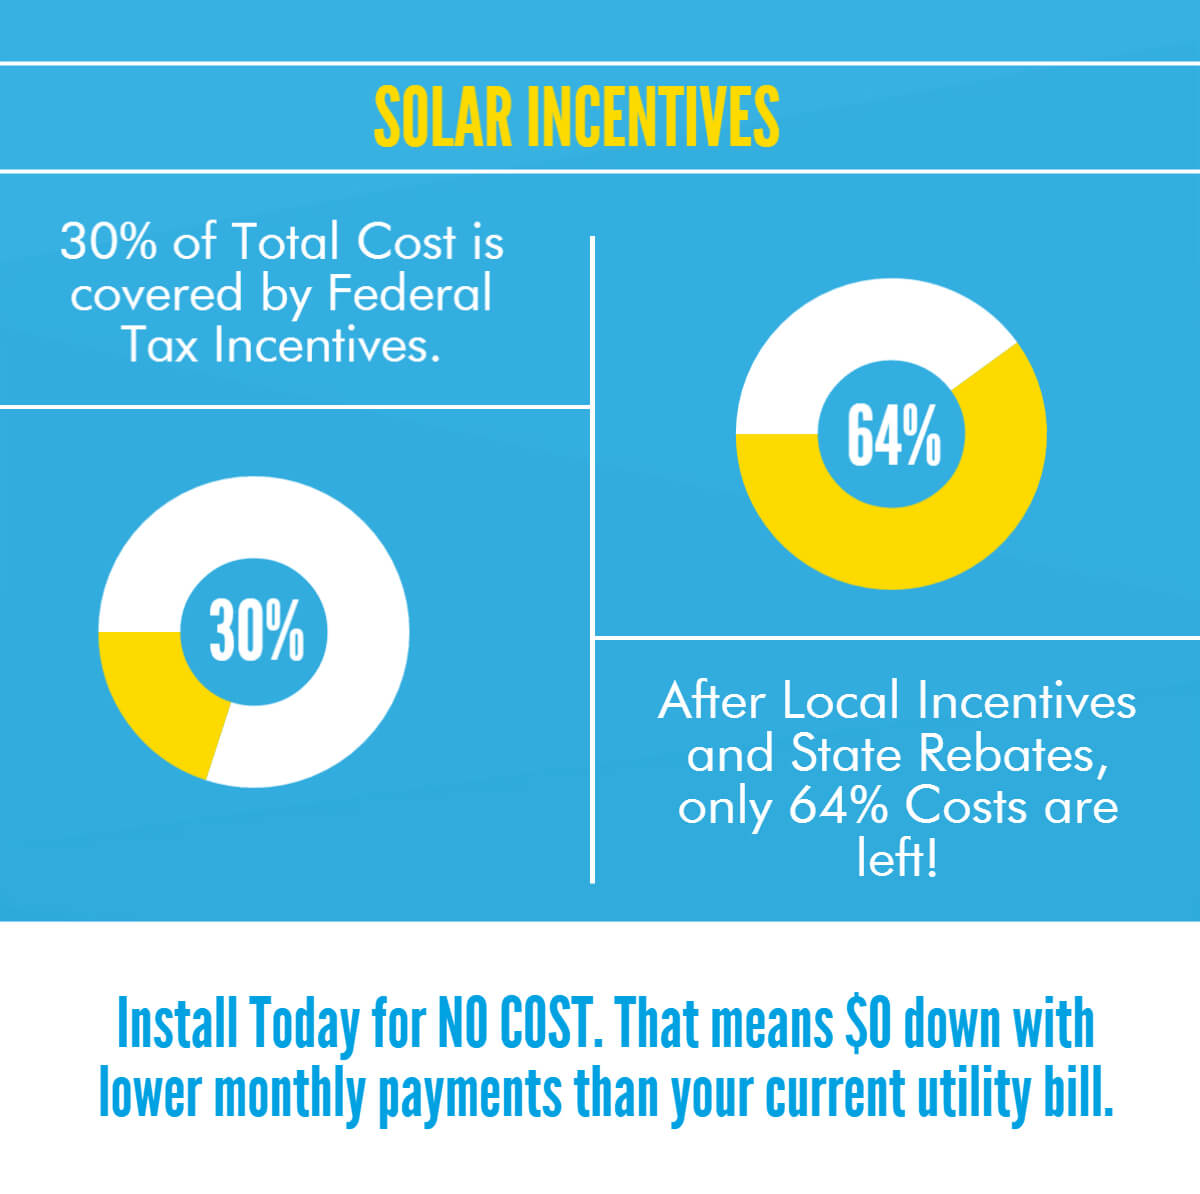 new star provides solar financing incentives